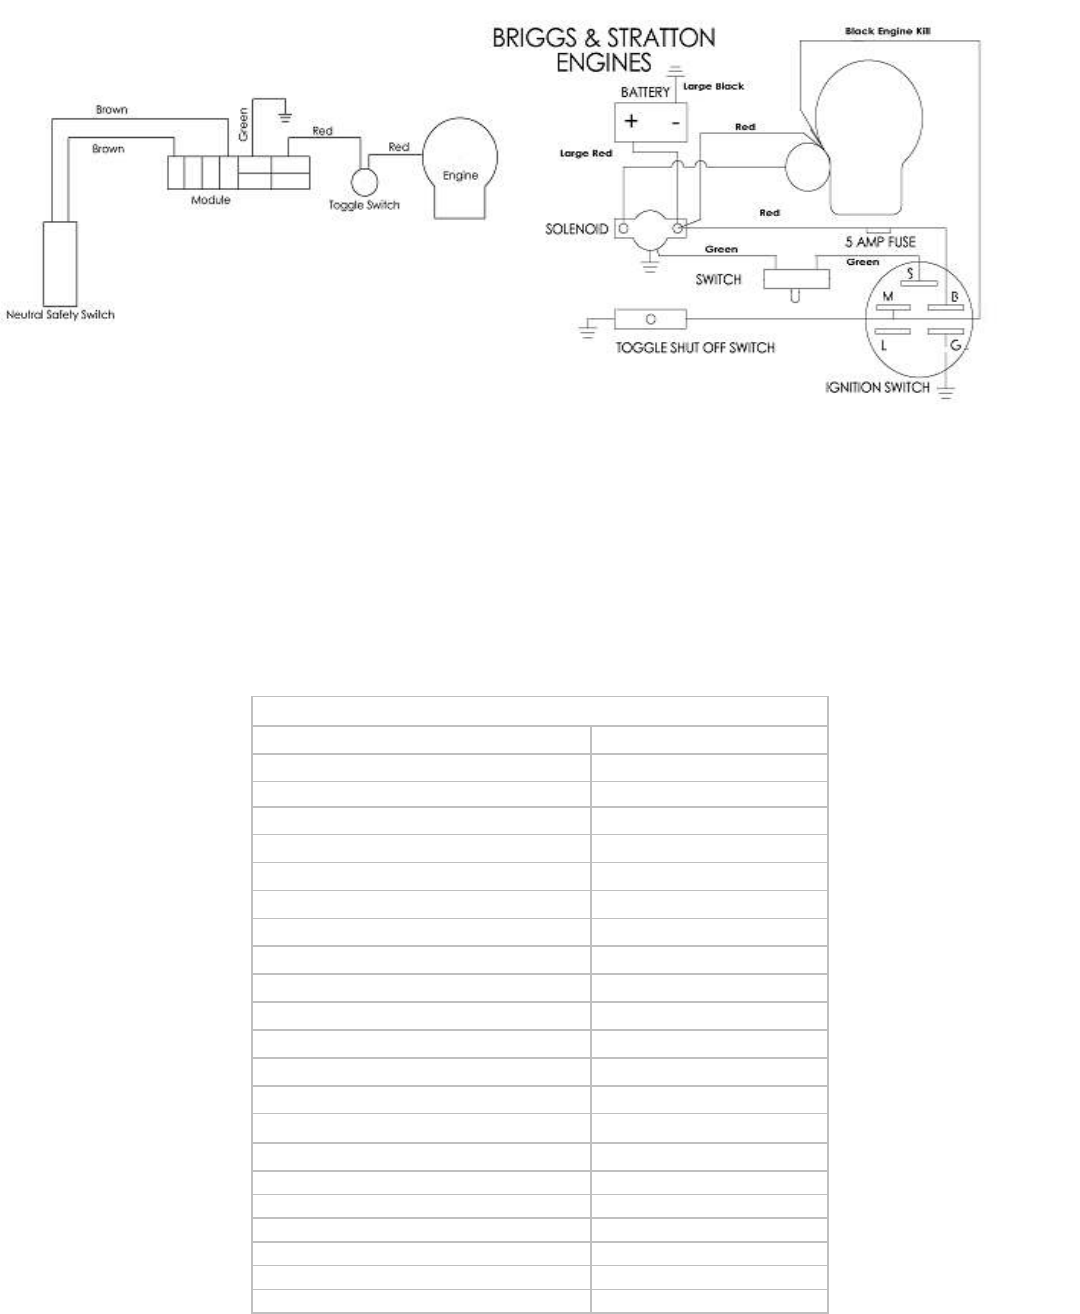 Electrical Wiring Diagram Swisher Mowers on swisher mower parts list, swisher mower manual, brute wiring diagram, swisher mower belt routing, swisher mower coil, swisher trailmower t14560a wiring-diagram, simplicity wiring diagram, swisher pull behind mower belts, swisher trail mower belt replacement, swisher mower parts catalog, swisher mower battery, lawn mower belt routing diagram, ignition system wiring diagram, swisher mower accessories, swisher parts diagram, toro wiring diagram, swisher ride king mower parts, swisher mower wheels, zero turn mower diagram, swisher 60 trail mower,